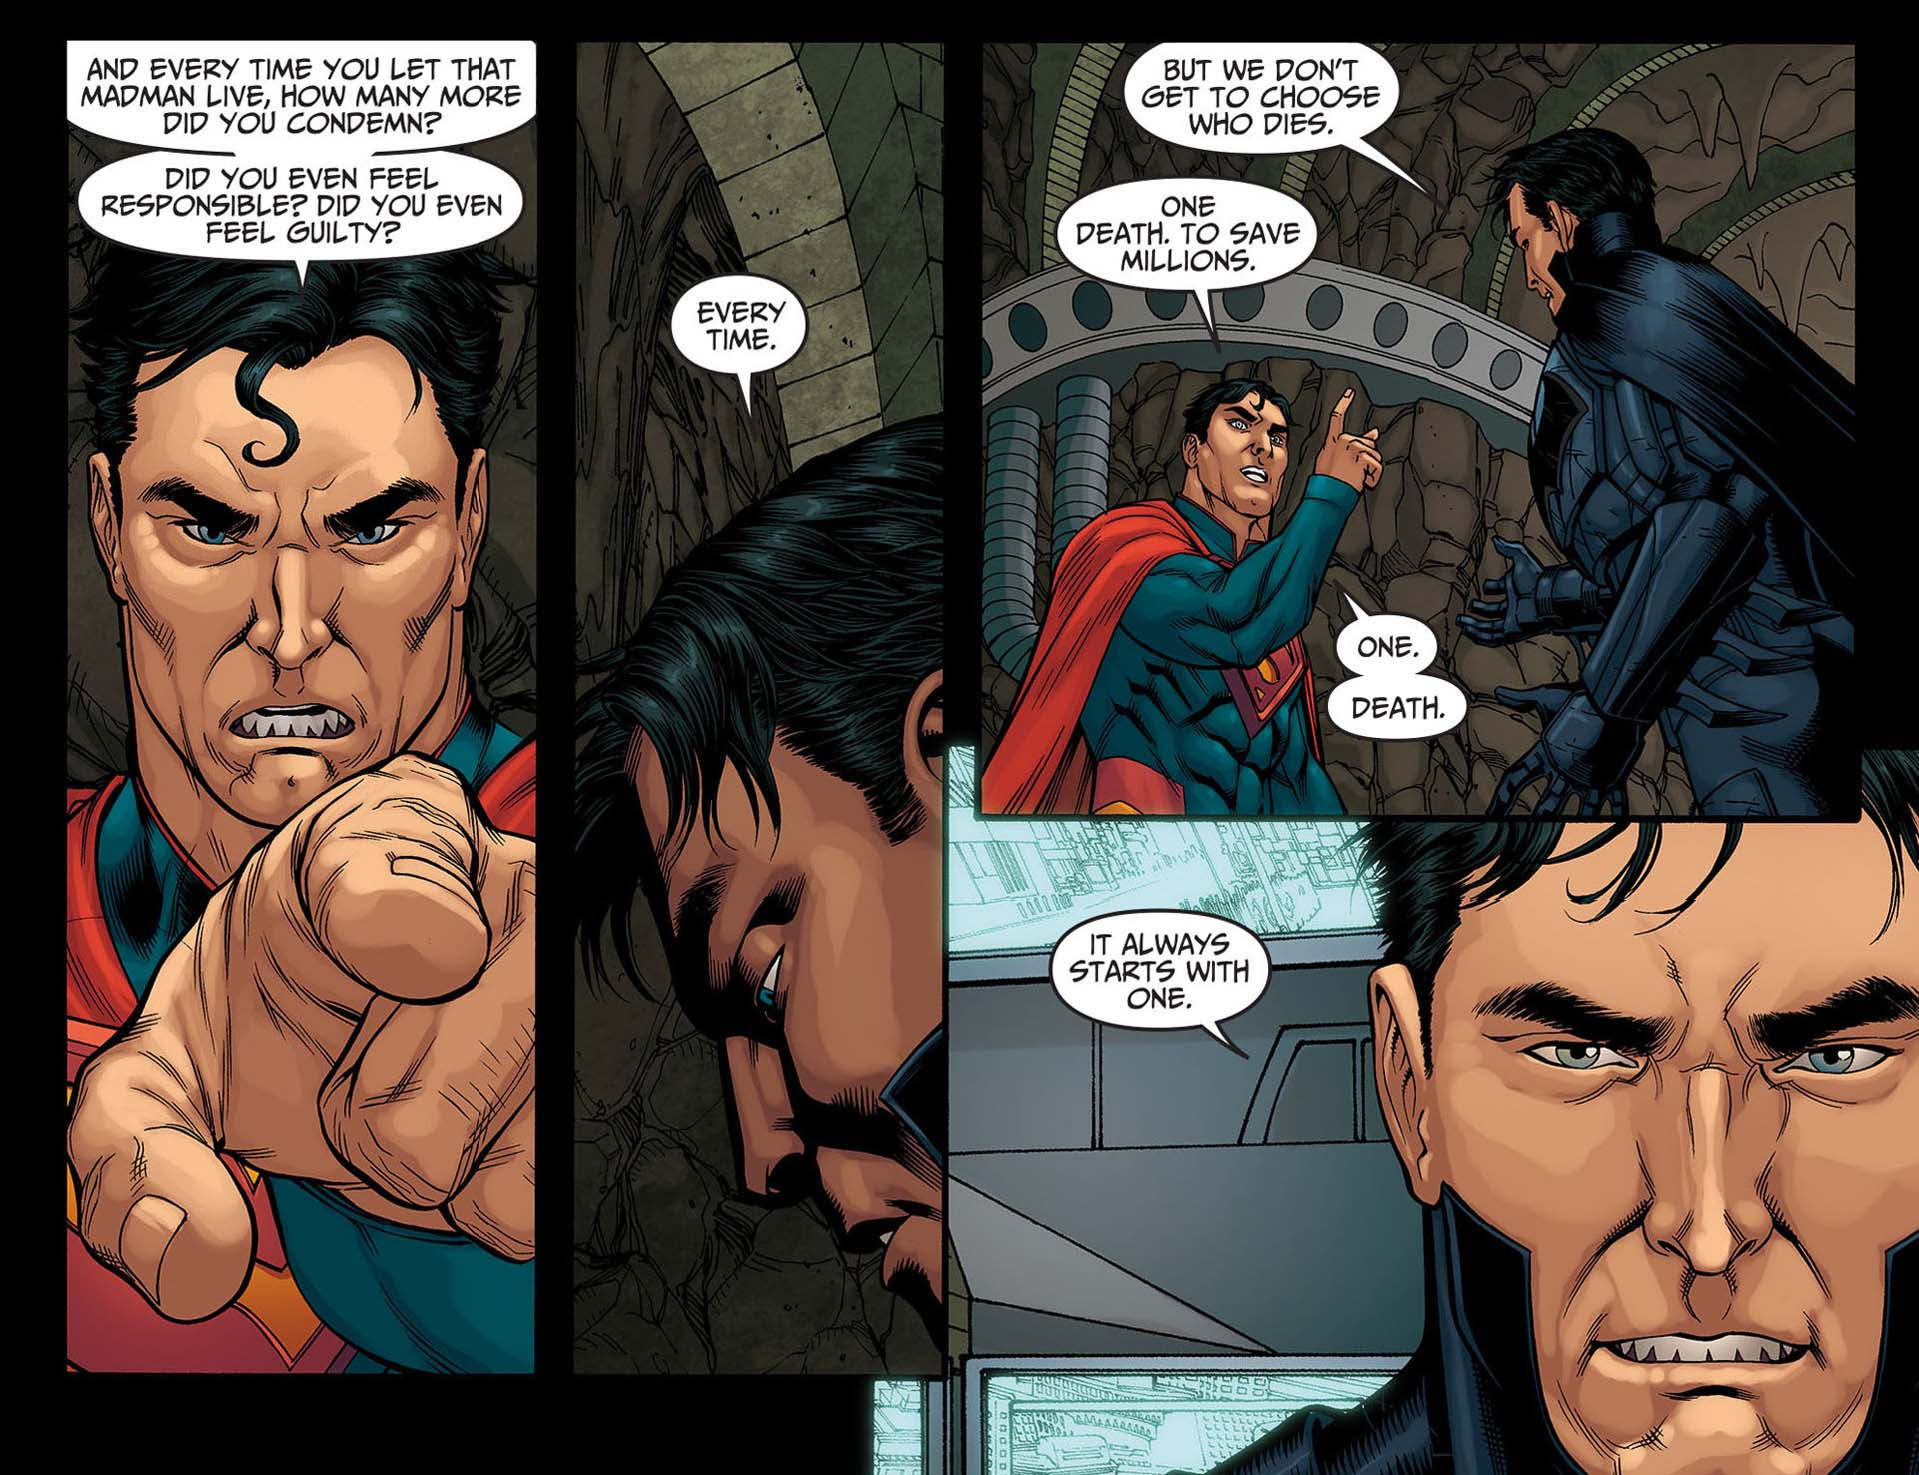 Superman i did and every time you let that madman live how many